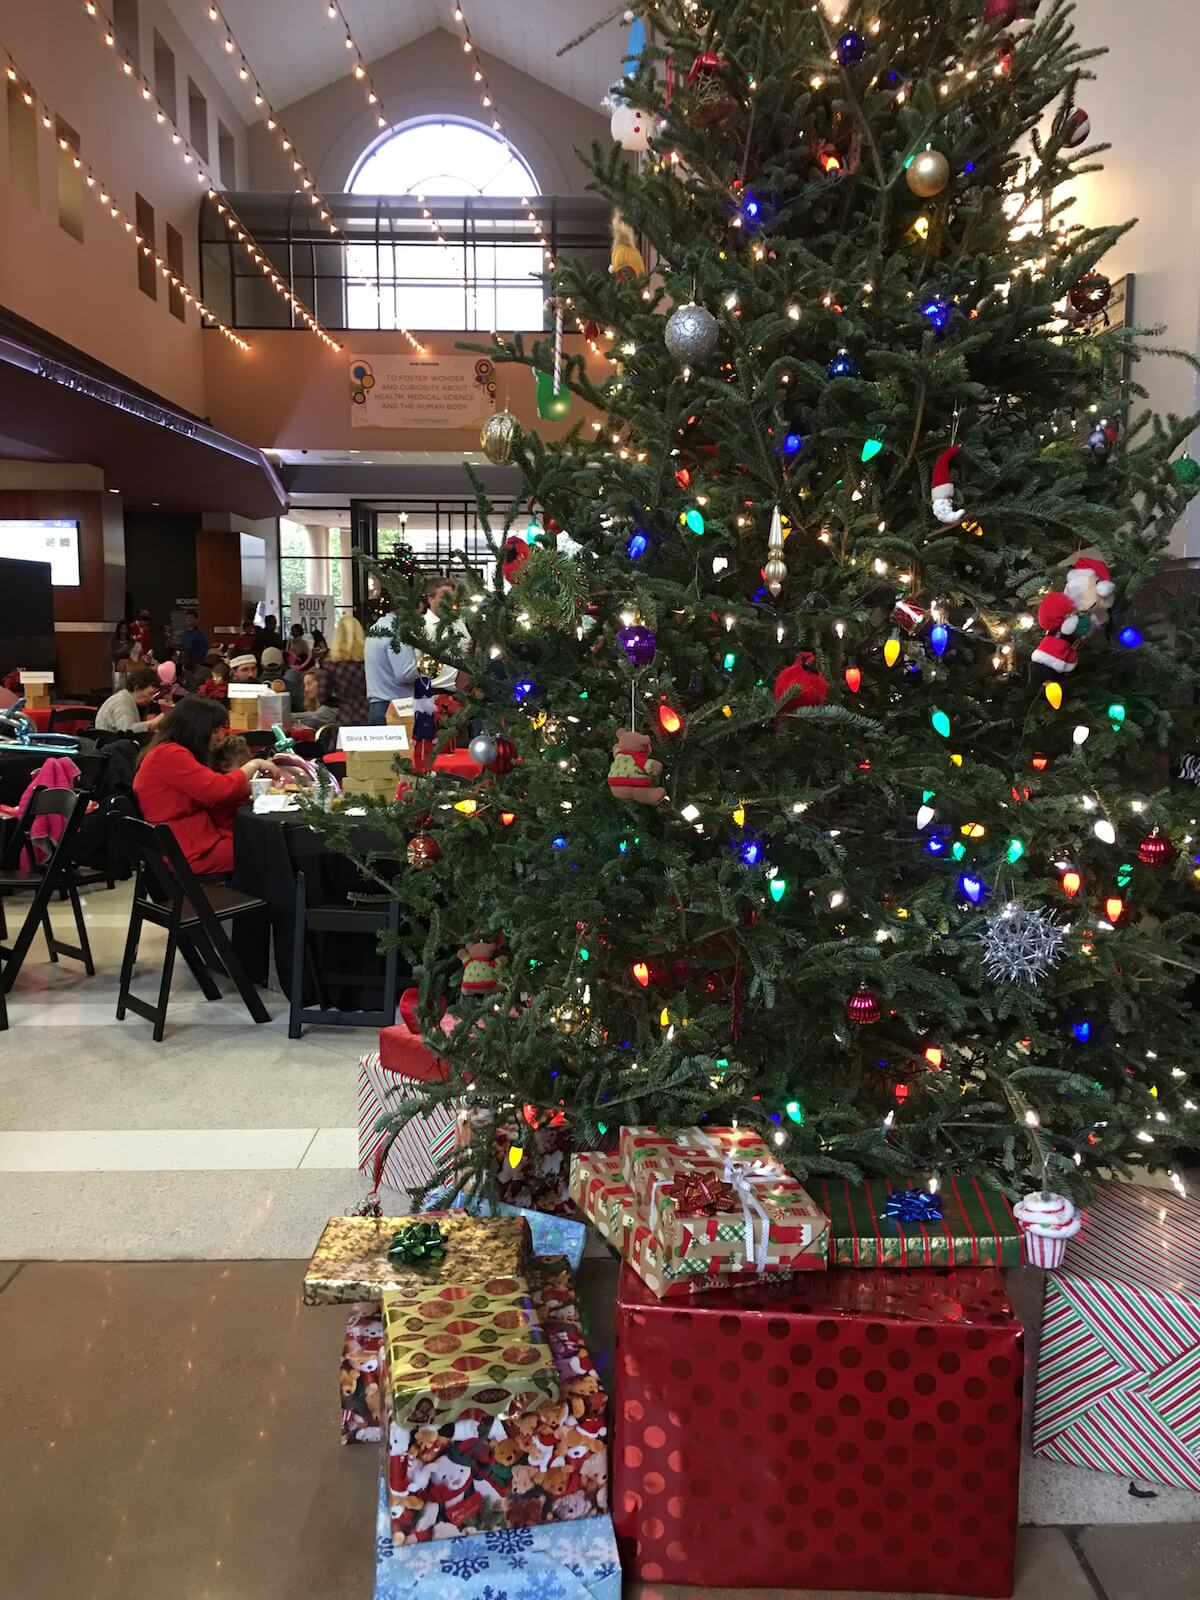 It's beginning to look a lot like Christmas at The Health Museum.